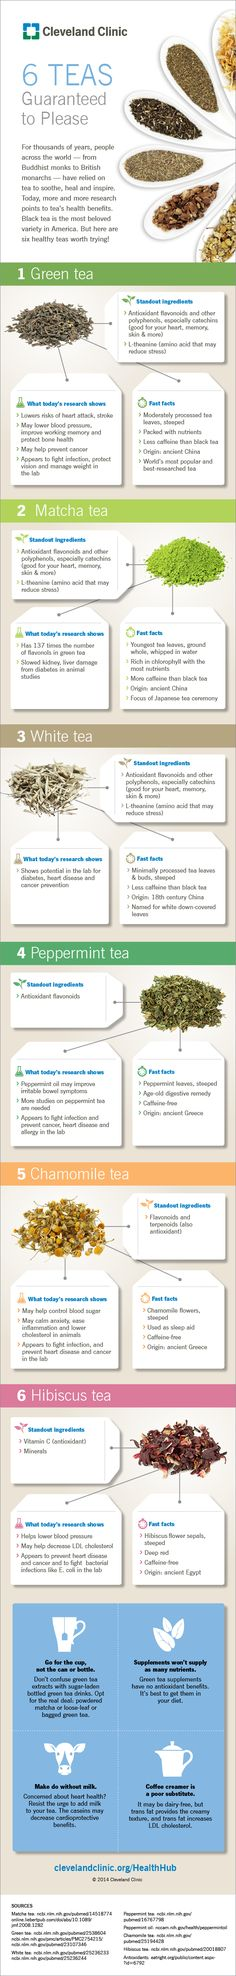 6 types of #tea that will make you healthier. #infographic